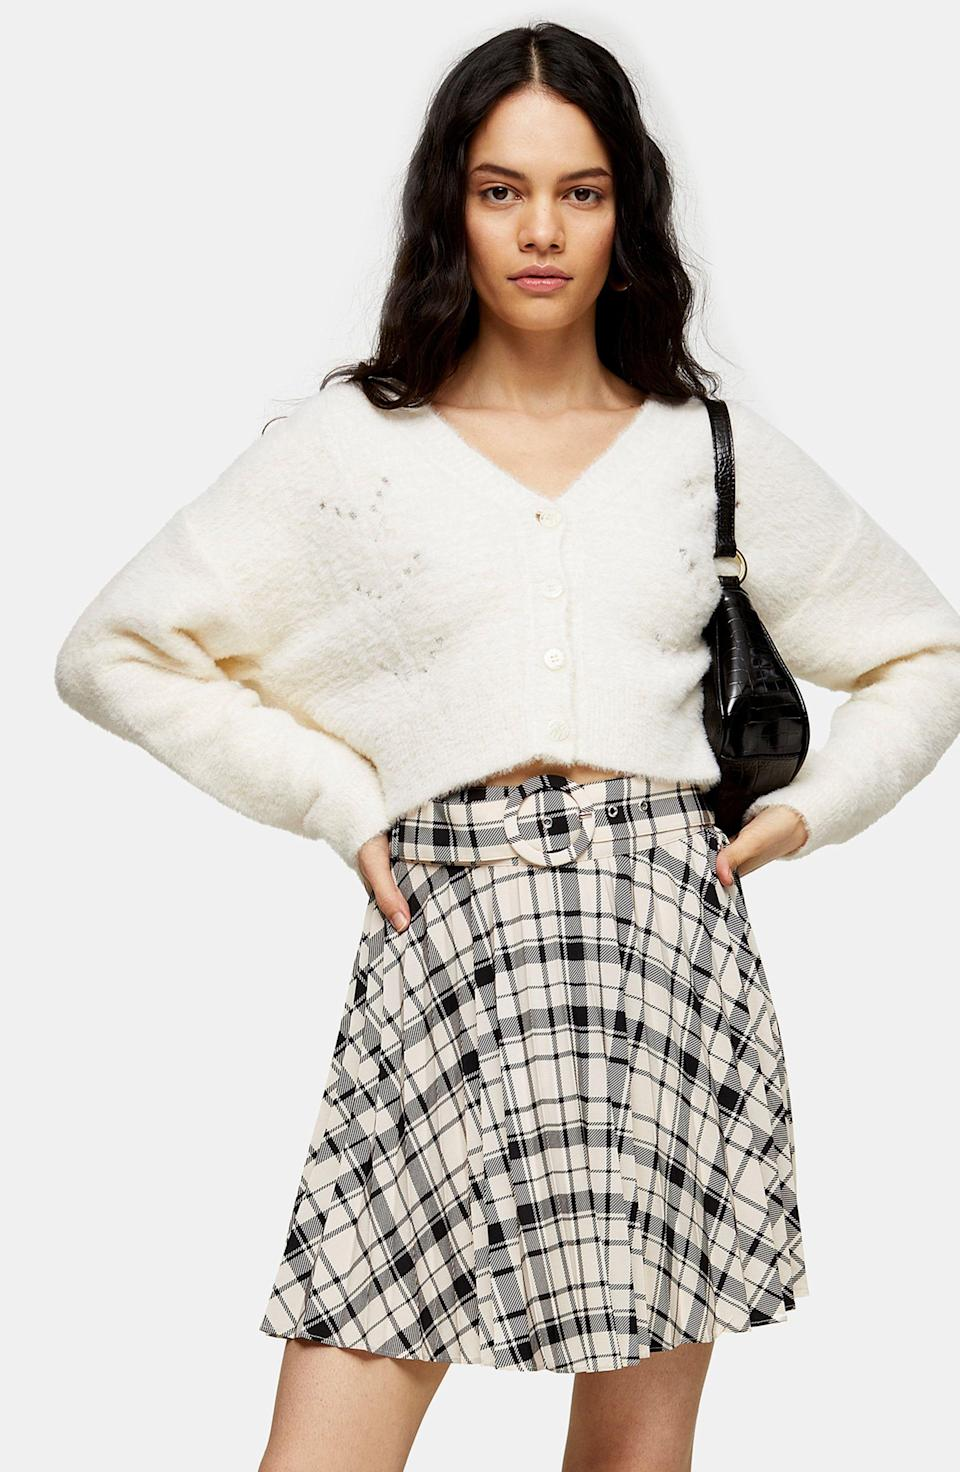 """<p><strong>TOPSHOP</strong></p><p>nordstrom.com</p><p><strong>$55.00</strong></p><p><a href=""""https://go.redirectingat.com?id=74968X1596630&url=https%3A%2F%2Fwww.nordstrom.com%2Fs%2Ftopshop-plaid-pleated-miniskirt%2F5619303&sref=https%3A%2F%2Fwww.goodhousekeeping.com%2Fclothing%2Fg33473194%2Ftransitional-clothing-summer-to-fall%2F"""" rel=""""nofollow noopener"""" target=""""_blank"""" data-ylk=""""slk:Shop Now"""" class=""""link rapid-noclick-resp"""">Shop Now</a></p><p>It's never too early to start donning plaid for the autumn season — especially if it's a cute mini skirt that you can easily transition from pairing with <a href=""""https://www.goodhousekeeping.com/clothing/g32106035/best-slip-on-sneakers/"""" rel=""""nofollow noopener"""" target=""""_blank"""" data-ylk=""""slk:summer sneakers"""" class=""""link rapid-noclick-resp"""">summer sneakers</a> to layering with some tights, boots, and a cozy sweater. </p>"""